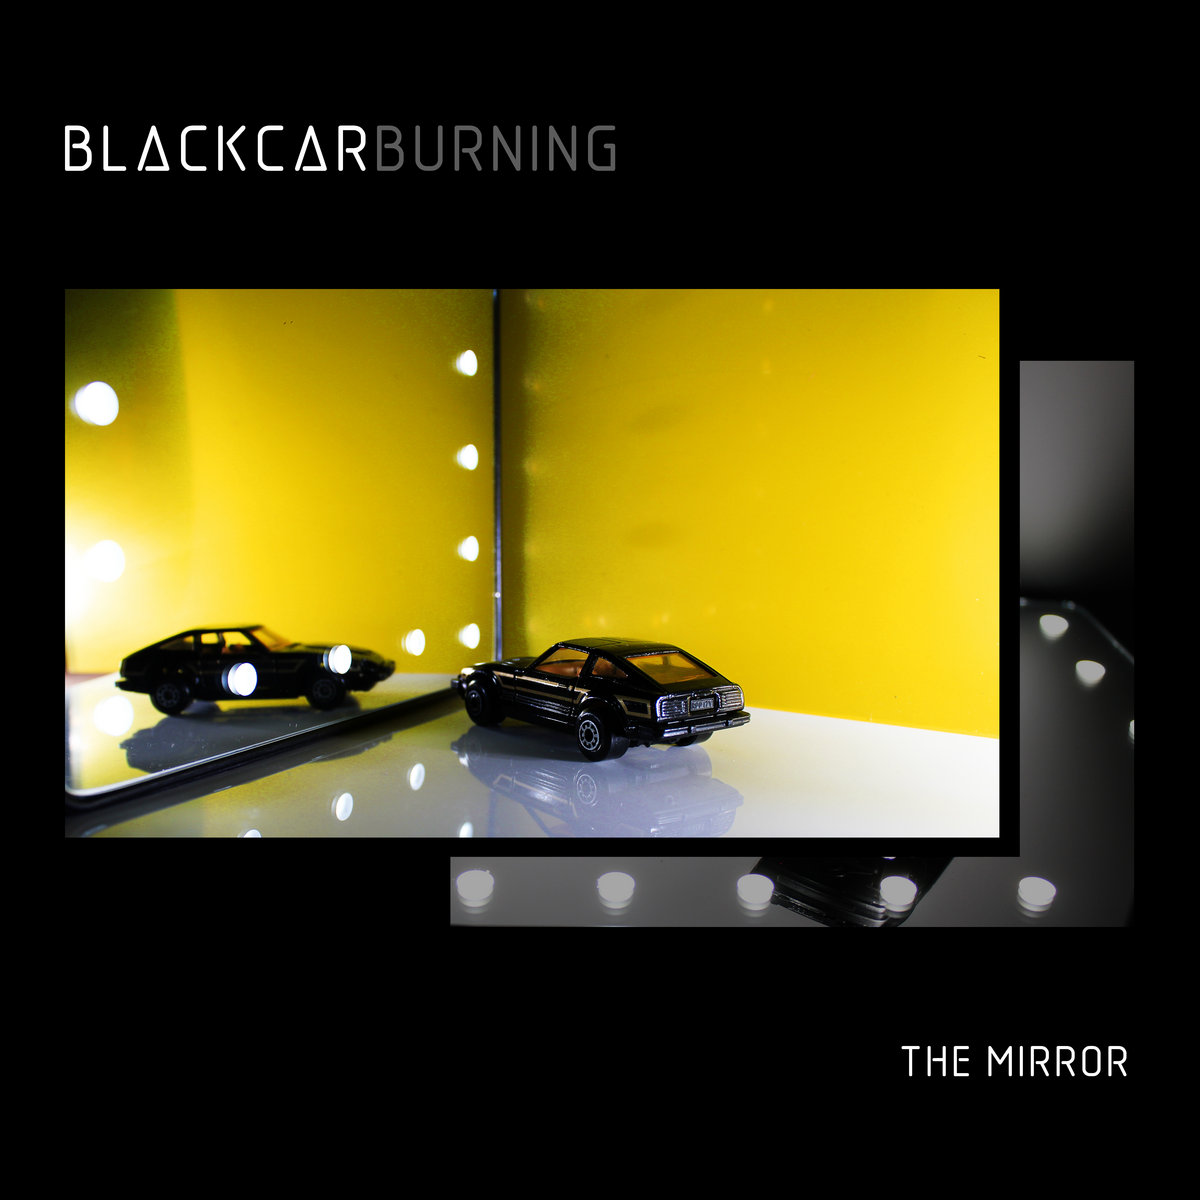 Blackcarburning - The Mirror - Blackcarburning - The Mirror